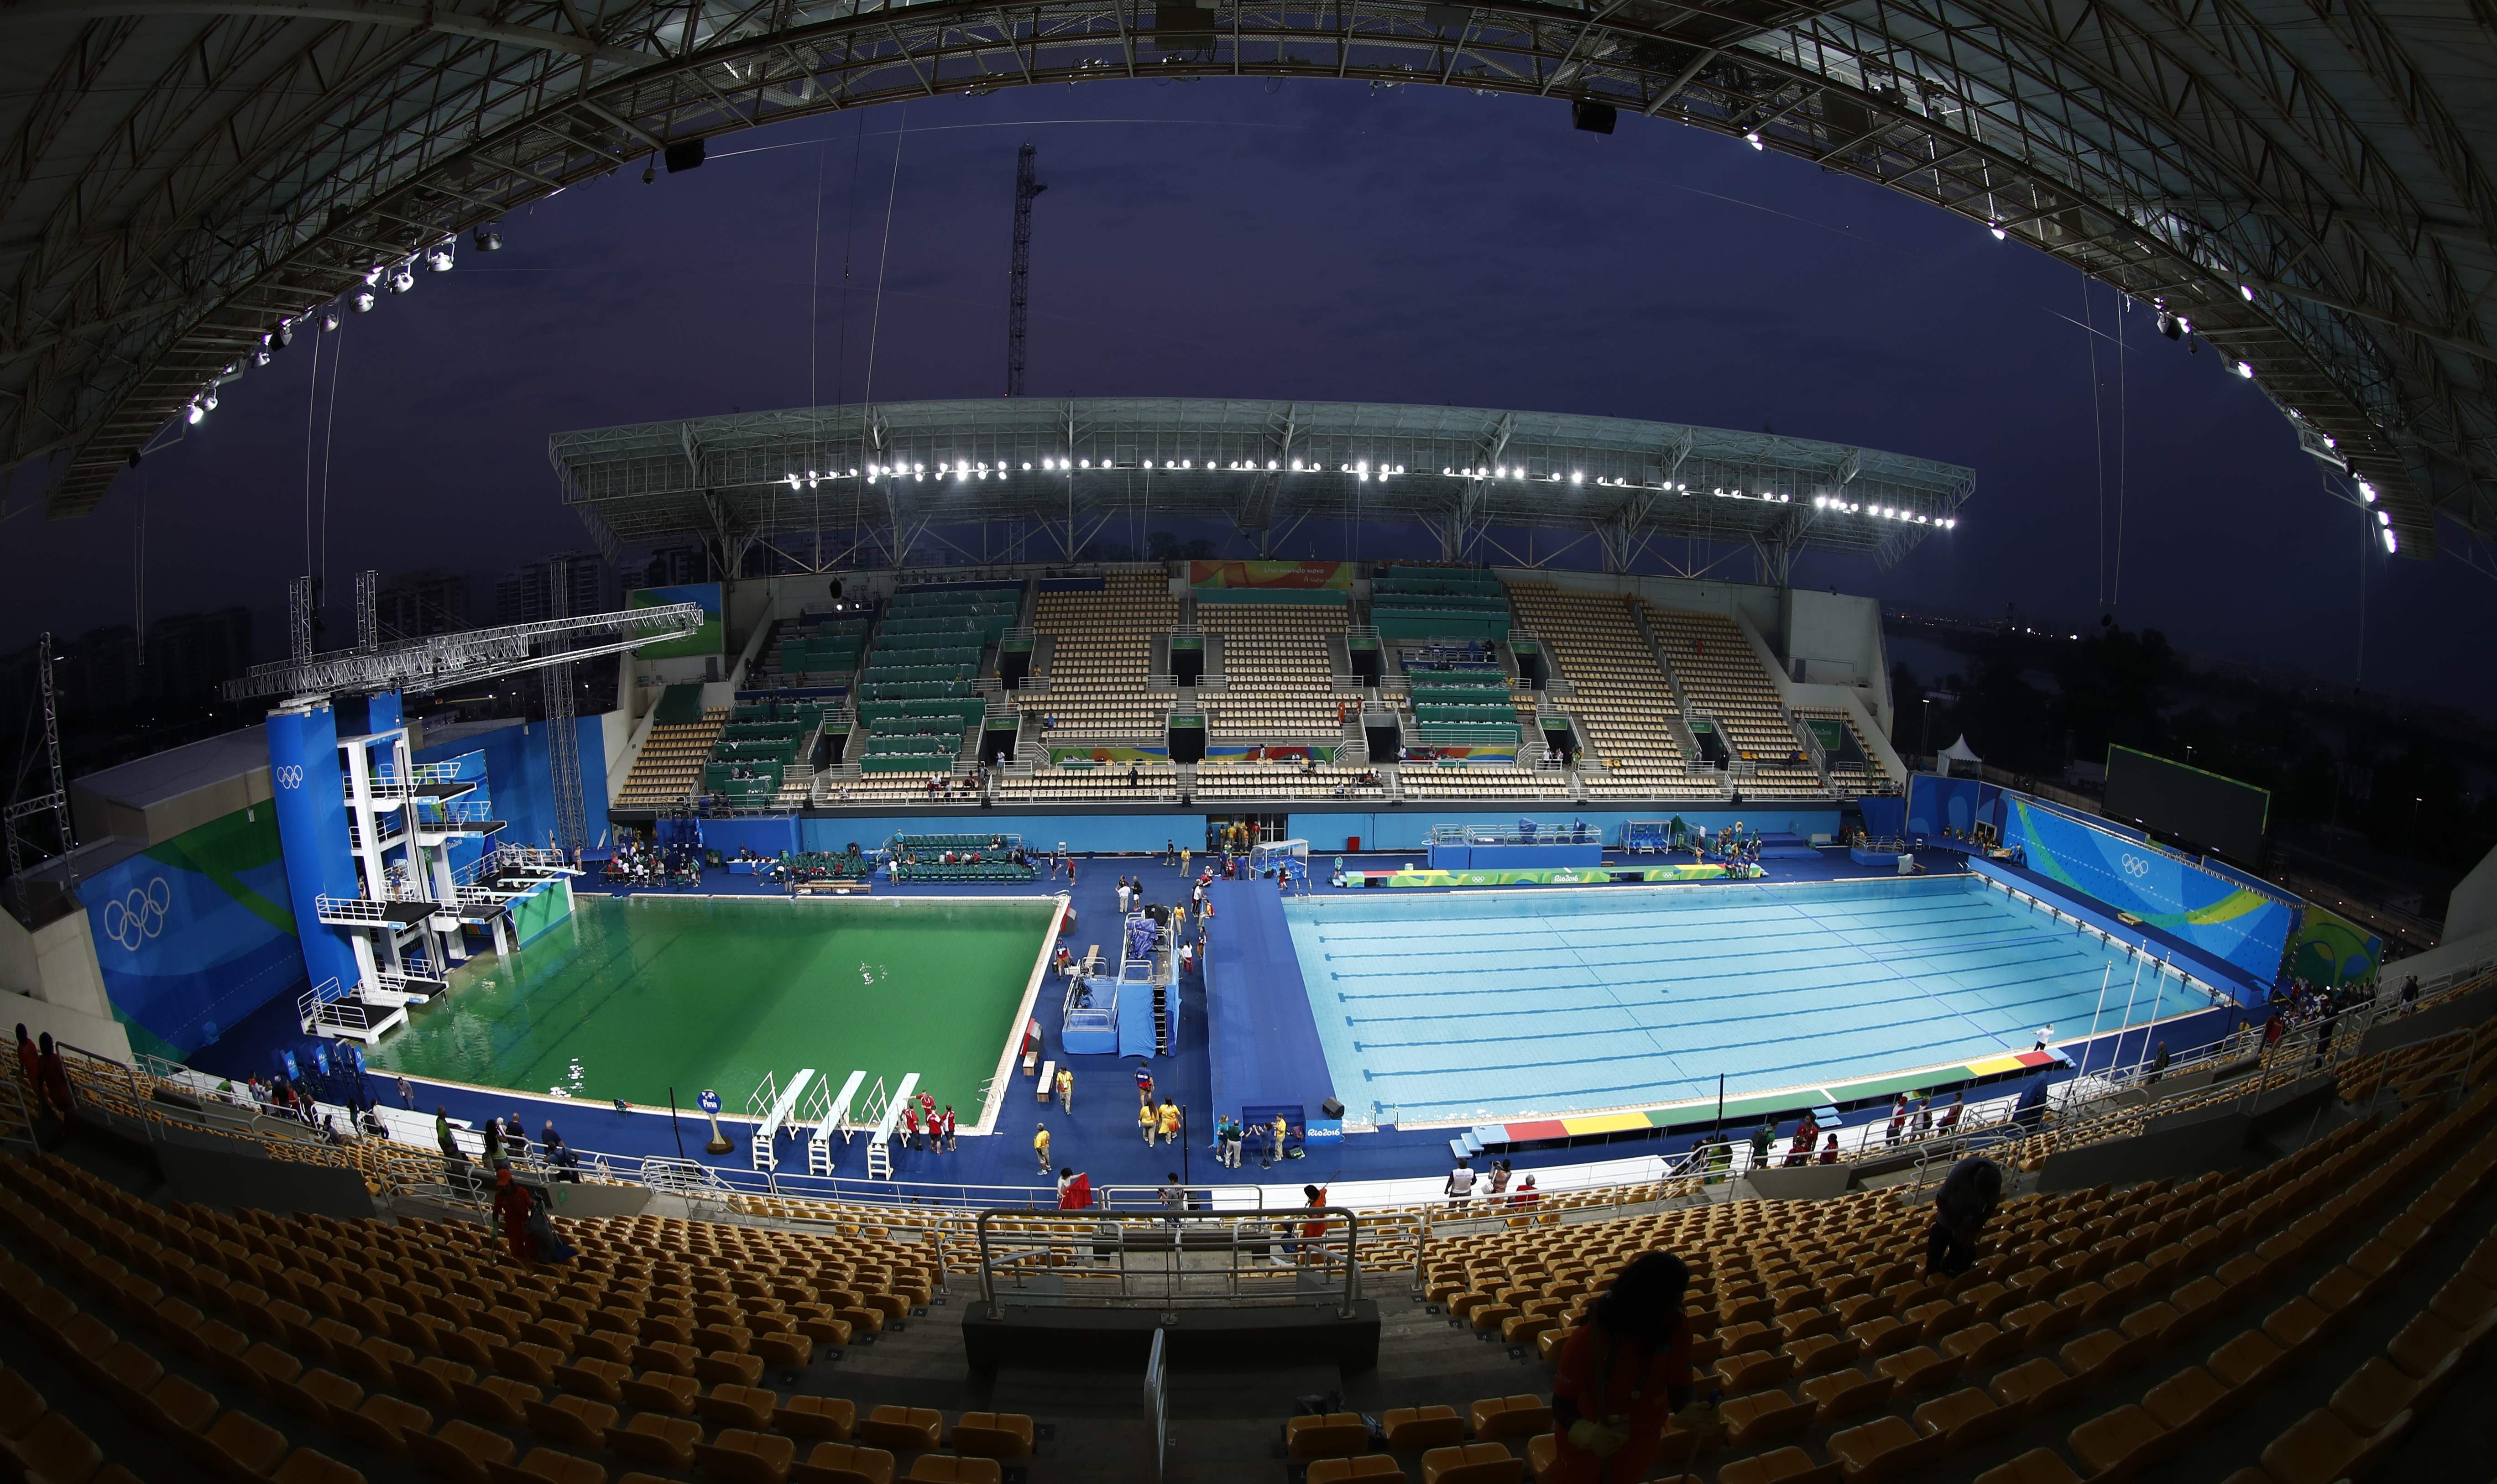 DIVING-OLY-2016-RIO